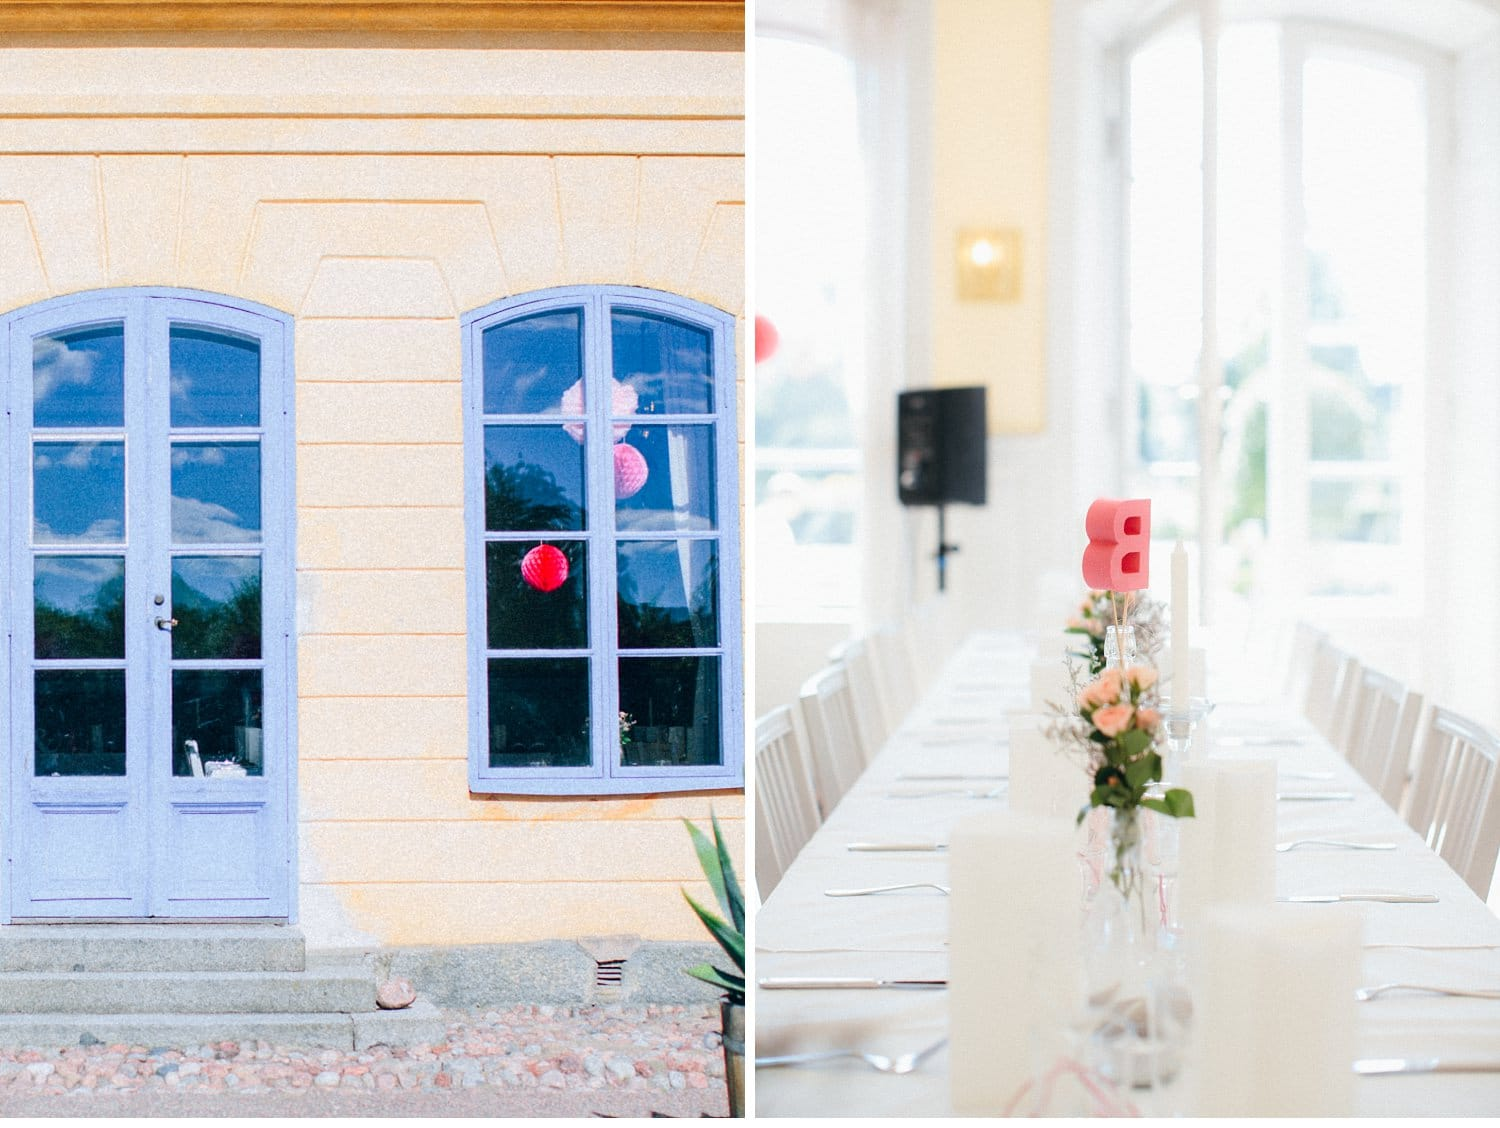 lisa kristoffer brollop uppsala wedding 16 - Lisa & Kristoffer wedding